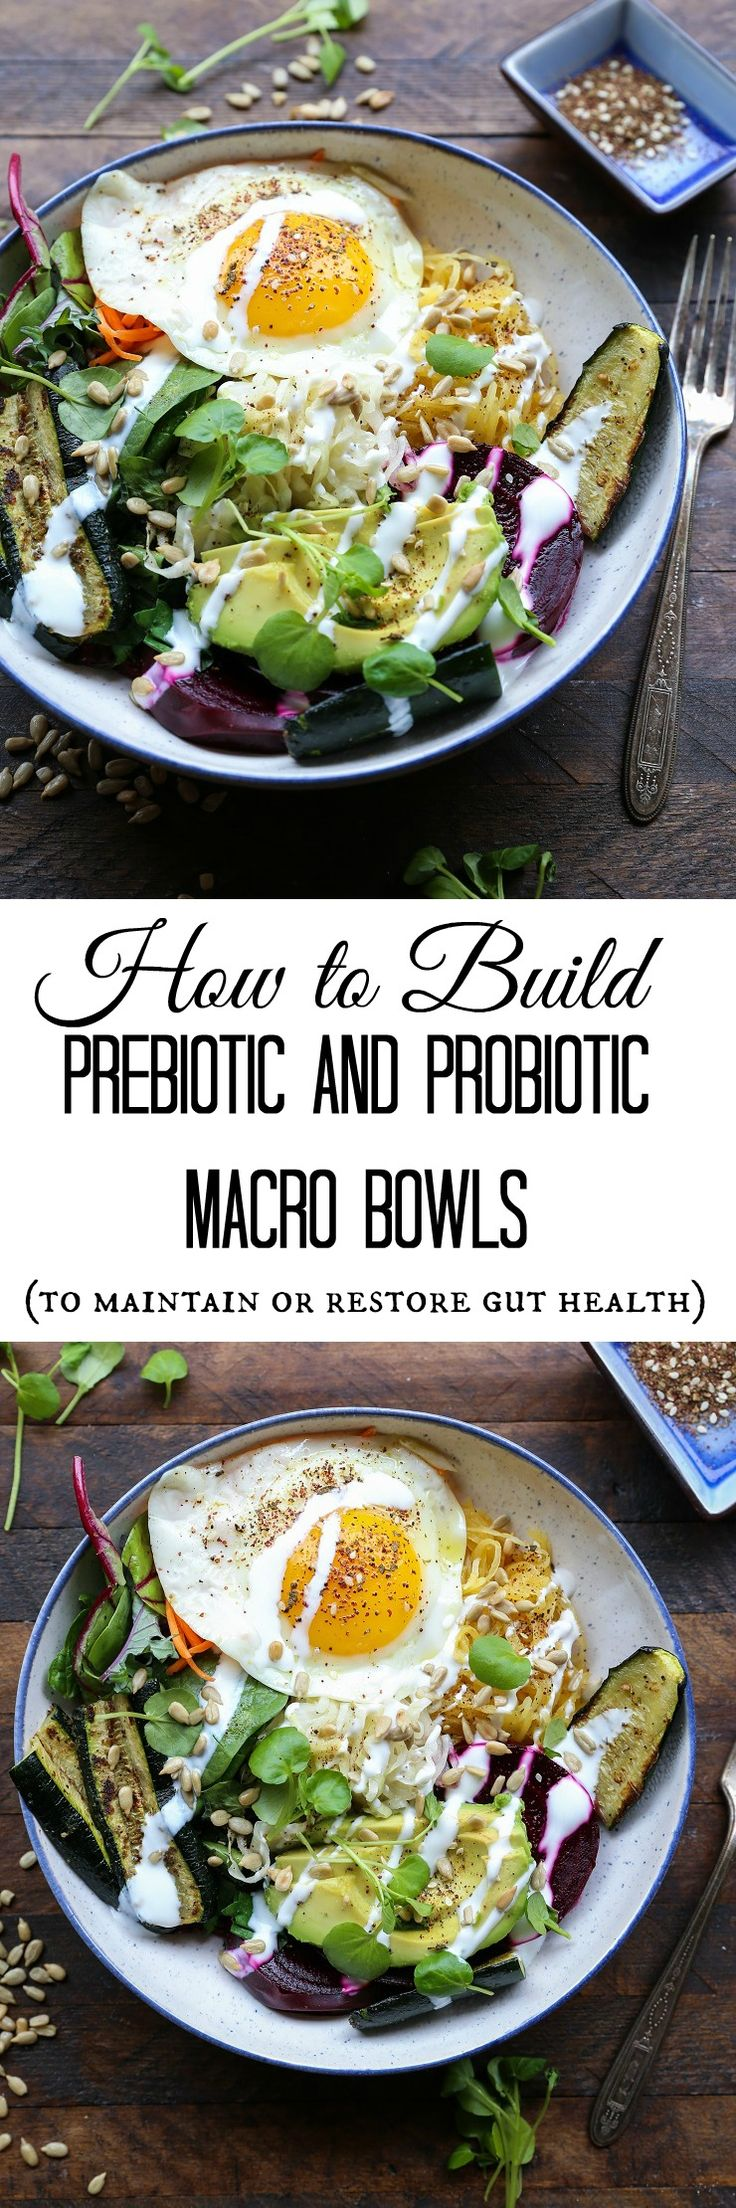 How to Build a Nutrient-Dense Prebiotic and Probiotic Macro Bowl (with tons of options for customization!) | TheRoastedRoot.net #vegetarian #healthy #recipe